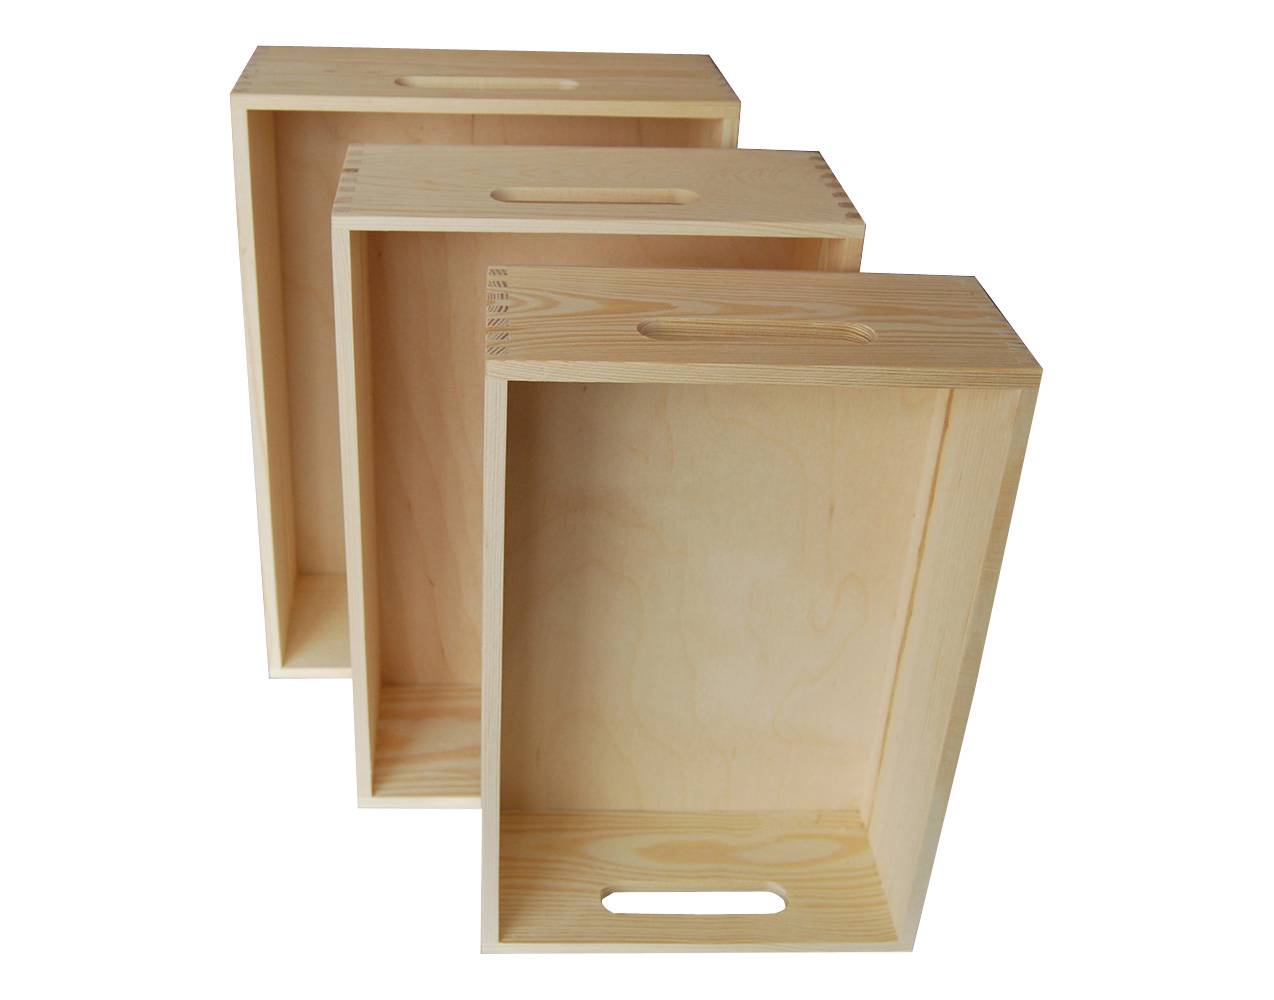 Wooden Crate With Handles Wooden Box Handles Images Reverse Search